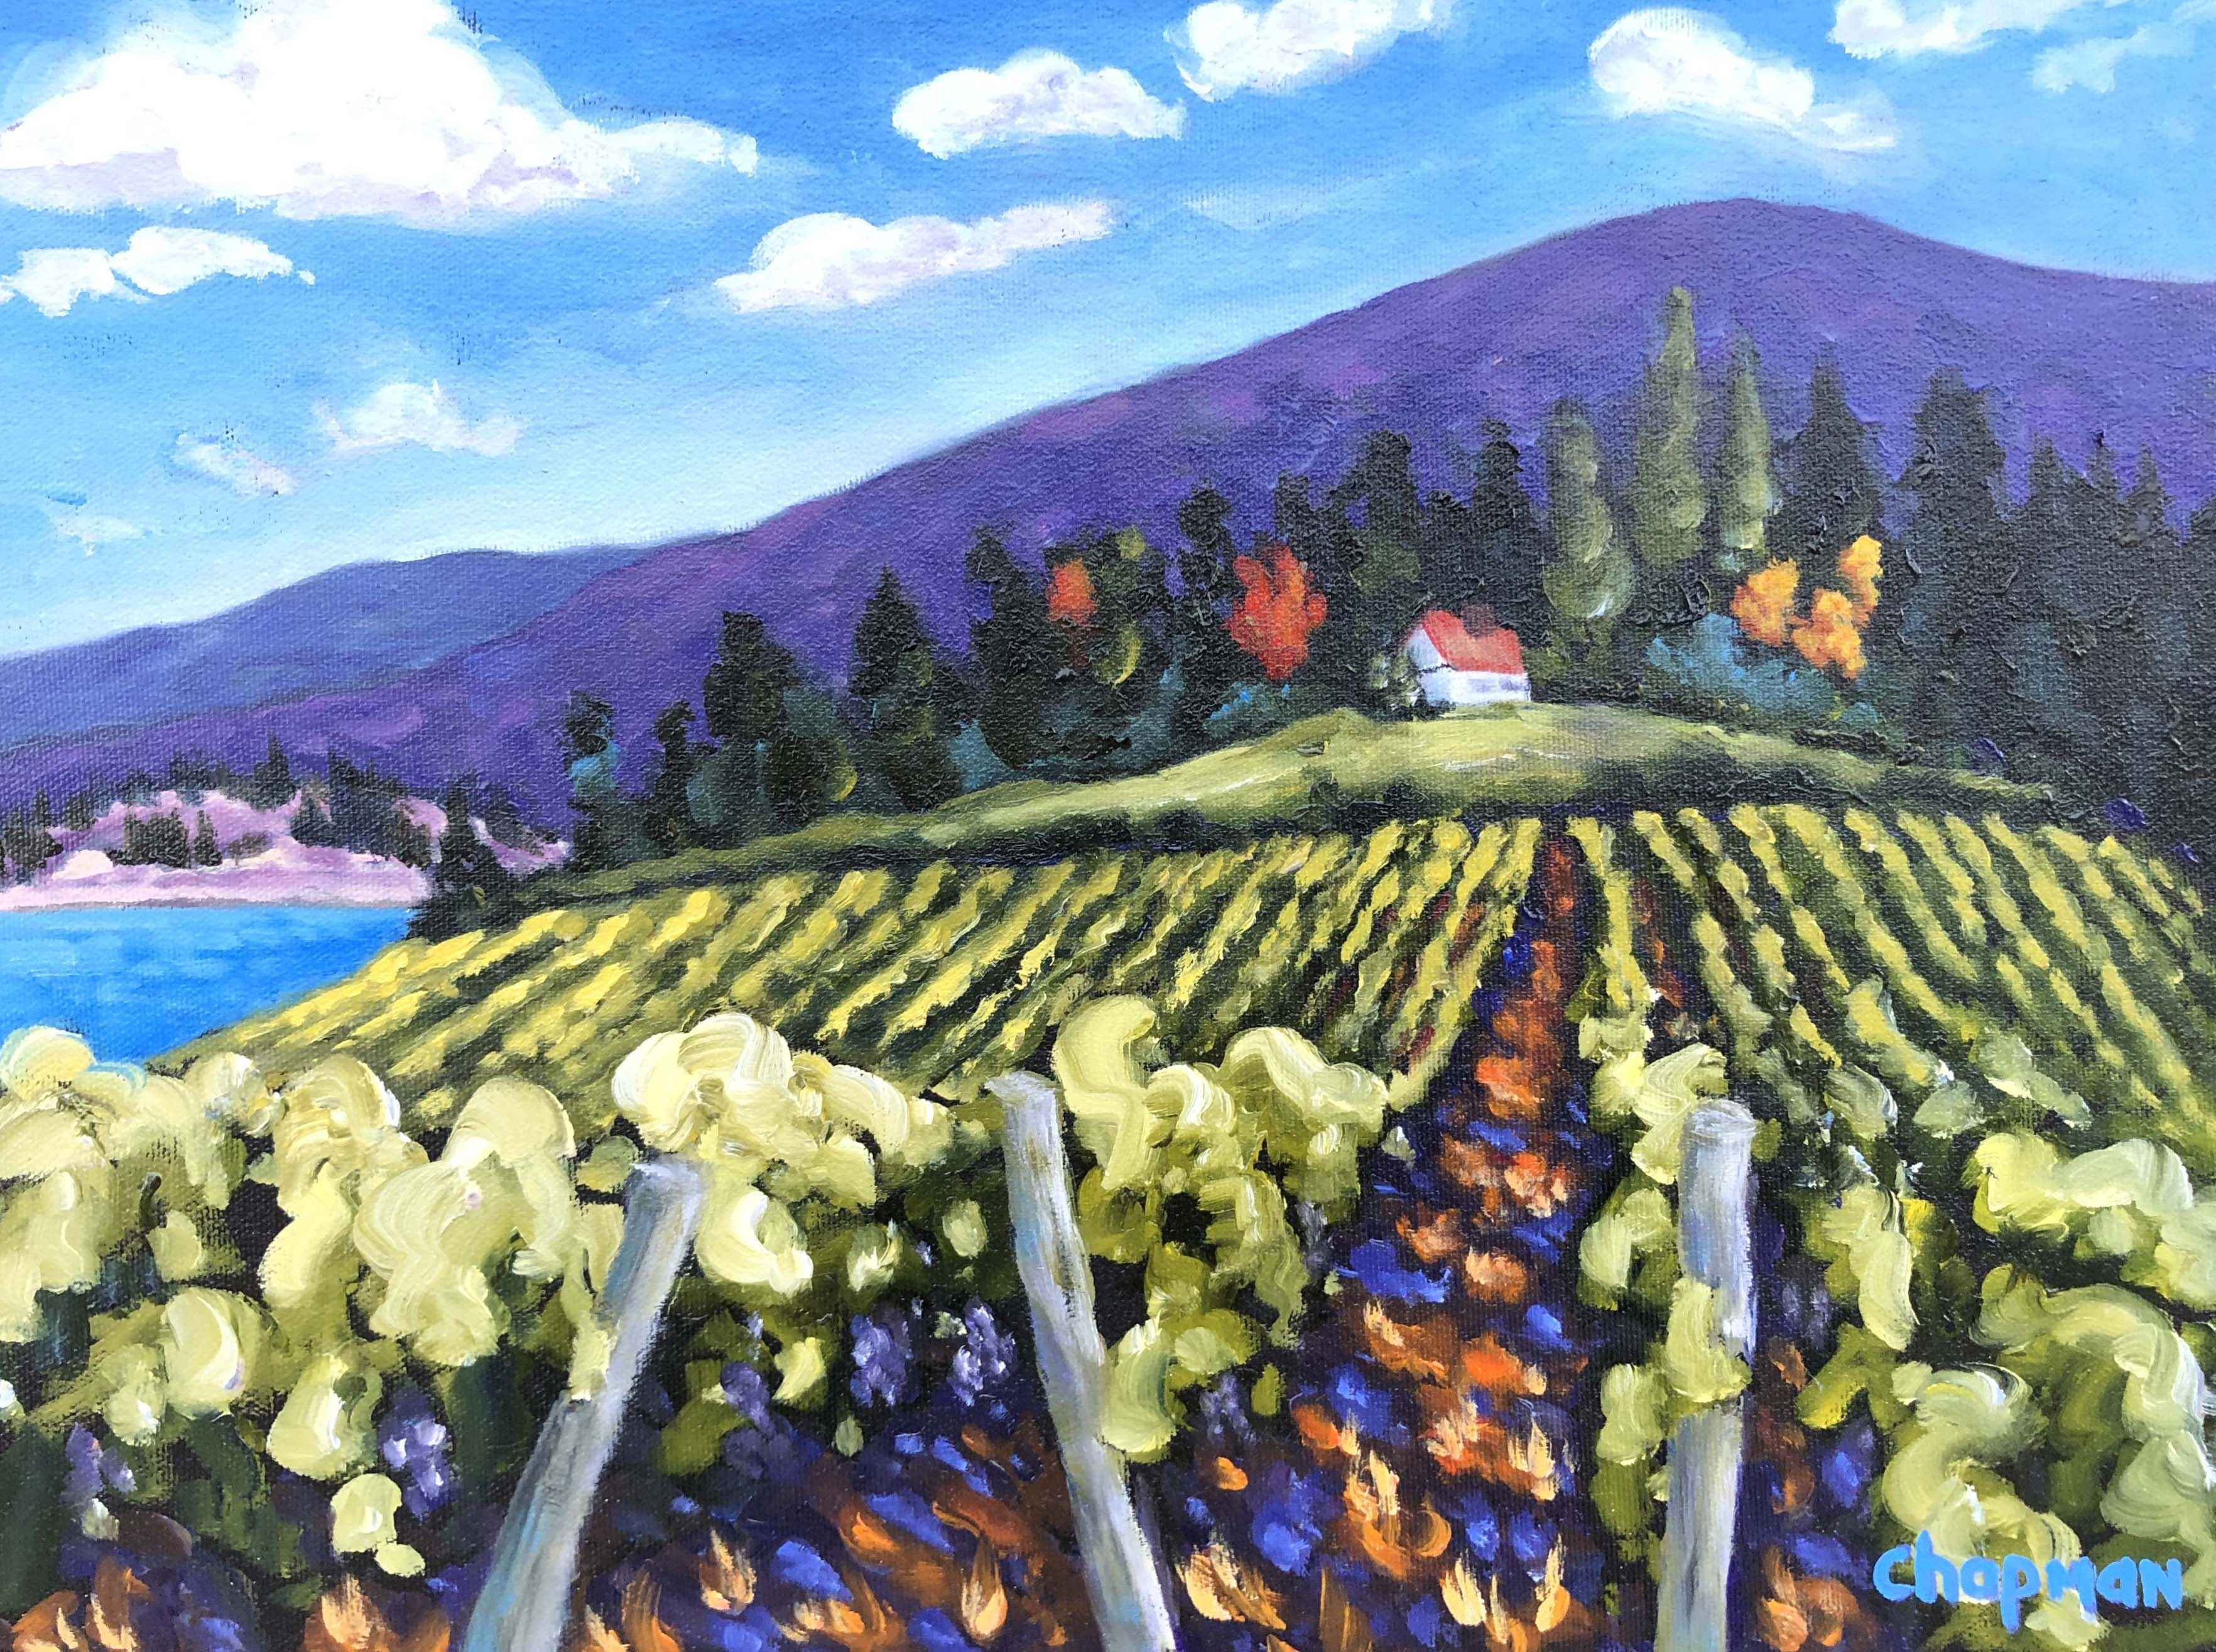 Nestled In the Vines by  Sandra Chapman - Masterpiece Online